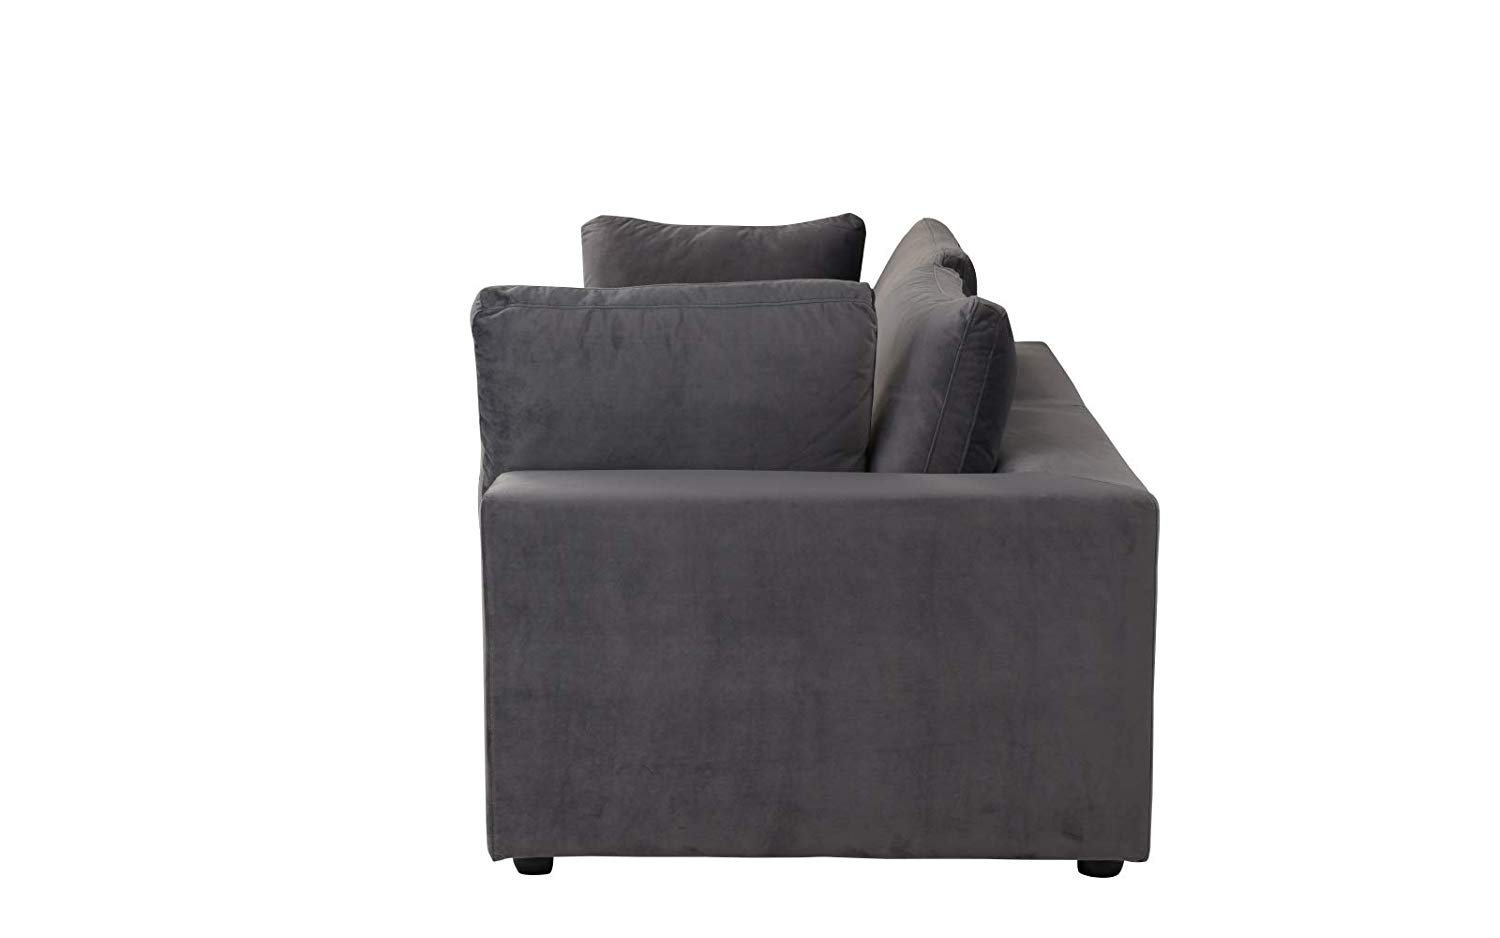 Classic Living Room Velvet Loveseat Couch Dark Grey